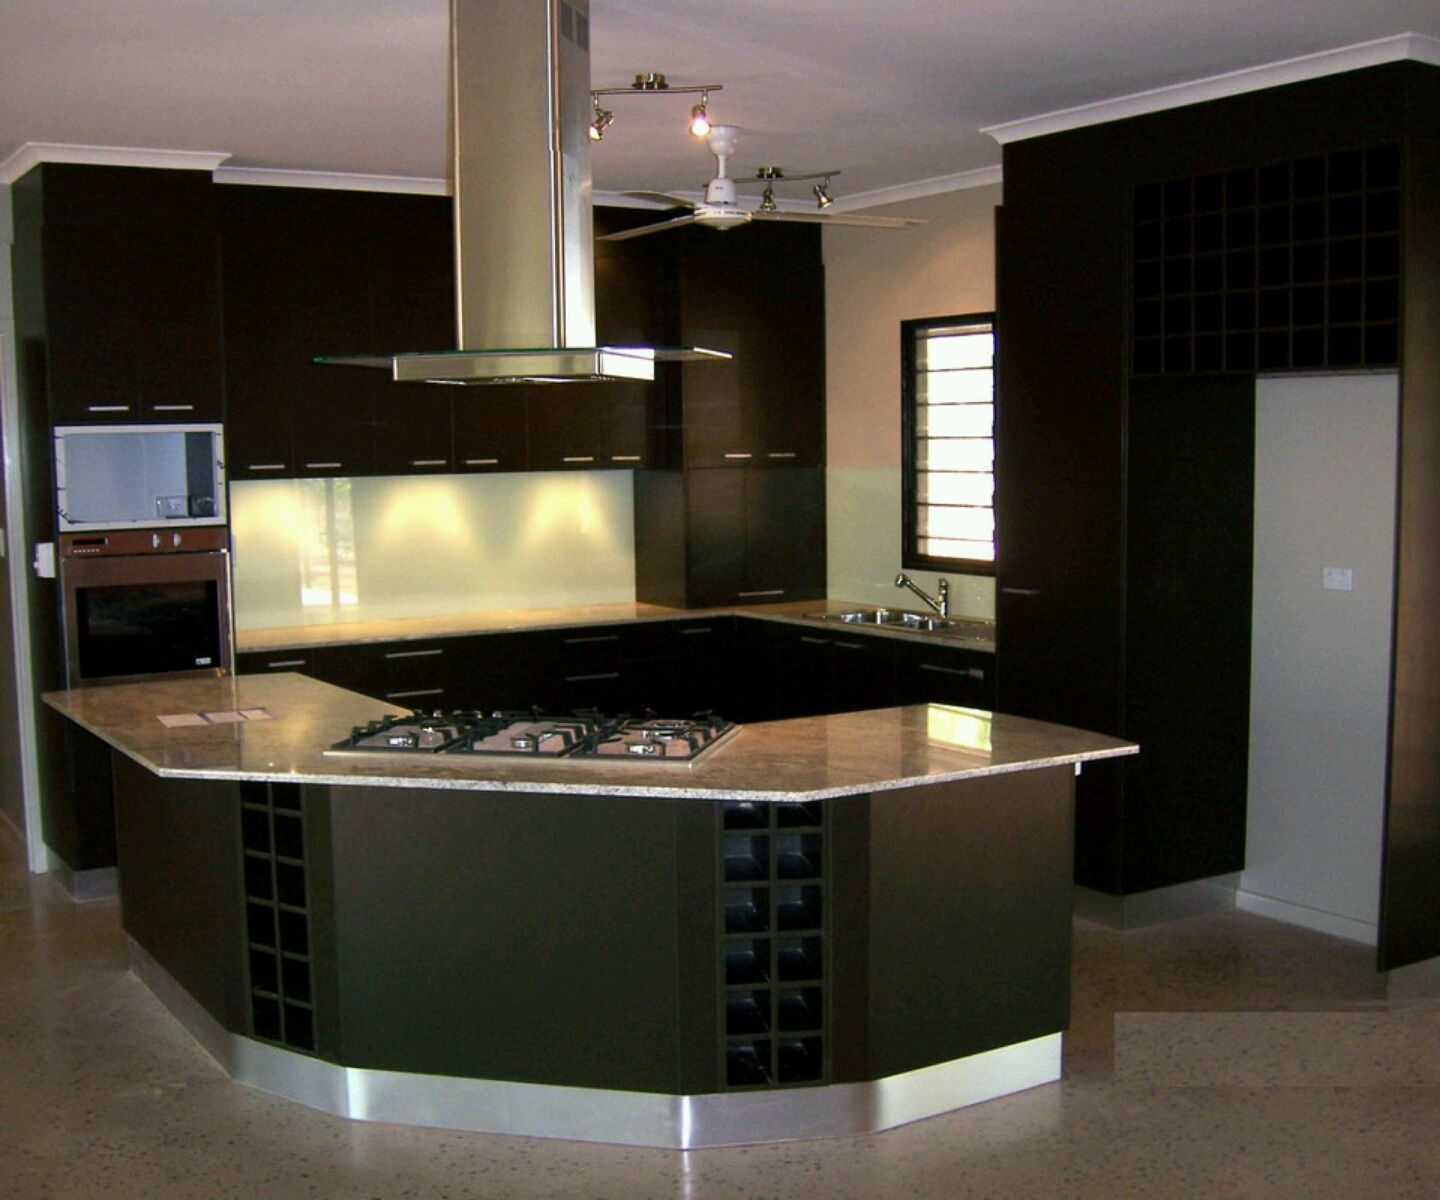 Kitchen Shelves Instead Of Cabinets 23 43 Efficient Freestanding Kitchen Cabinet Ideas That Will